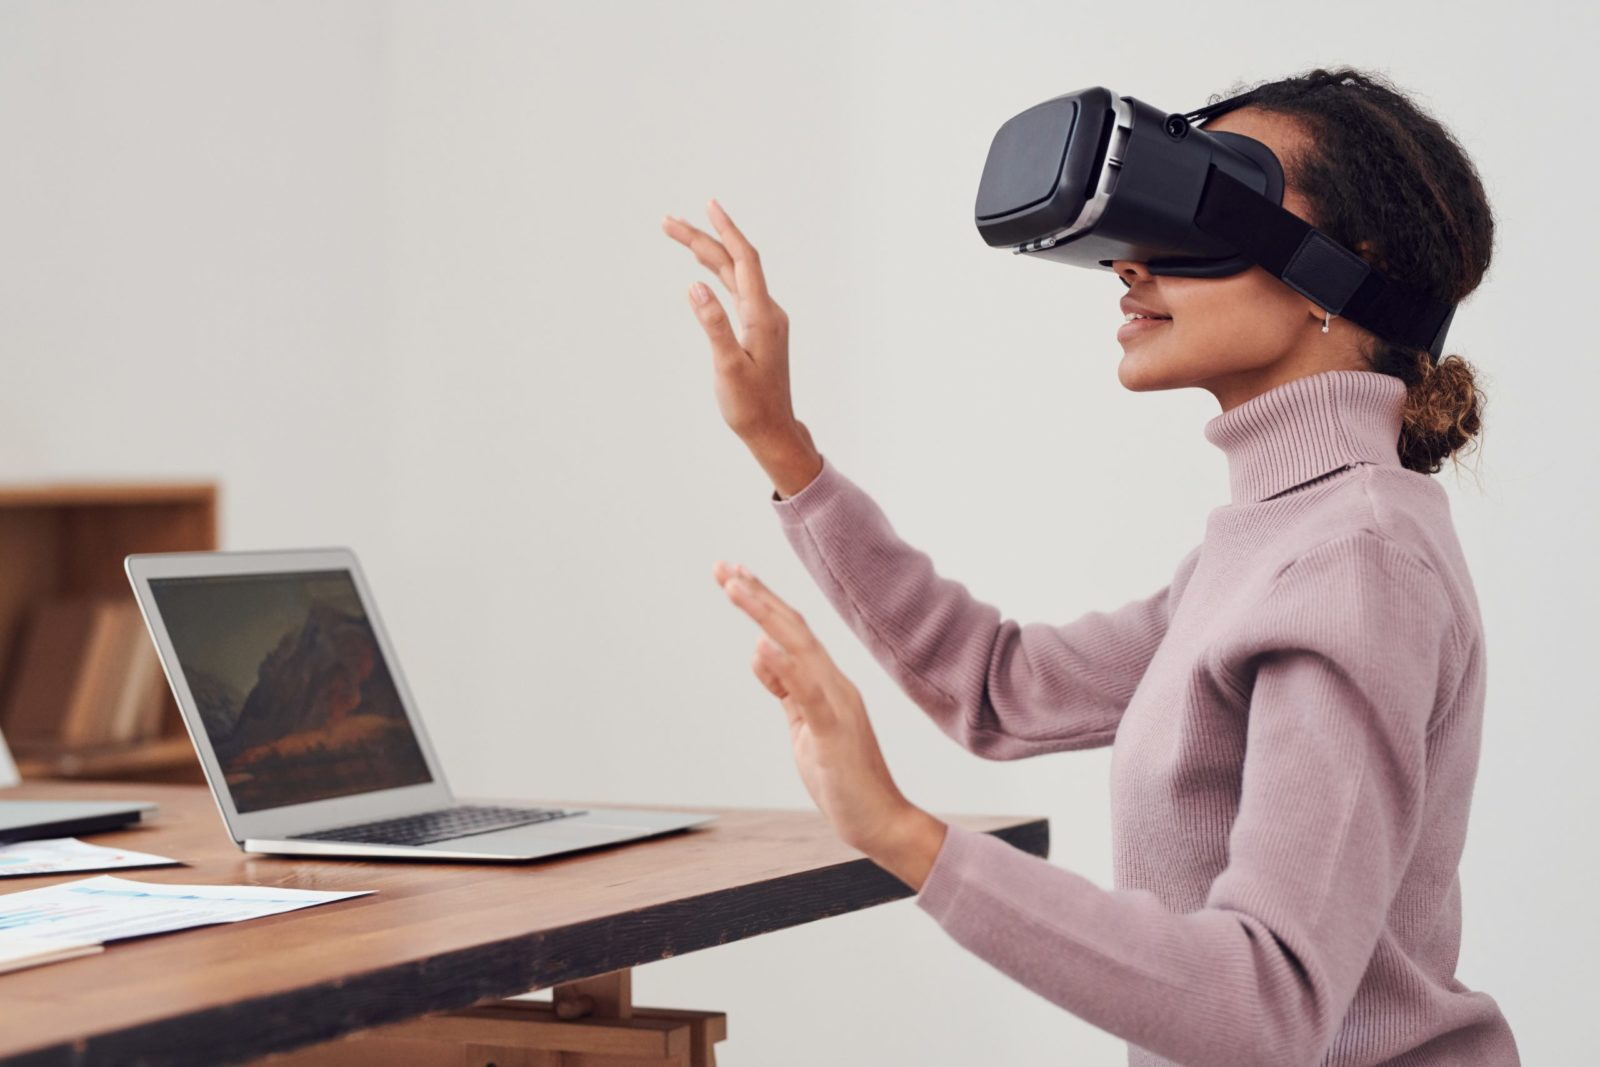 The person enjoying an event from her home using VR technology